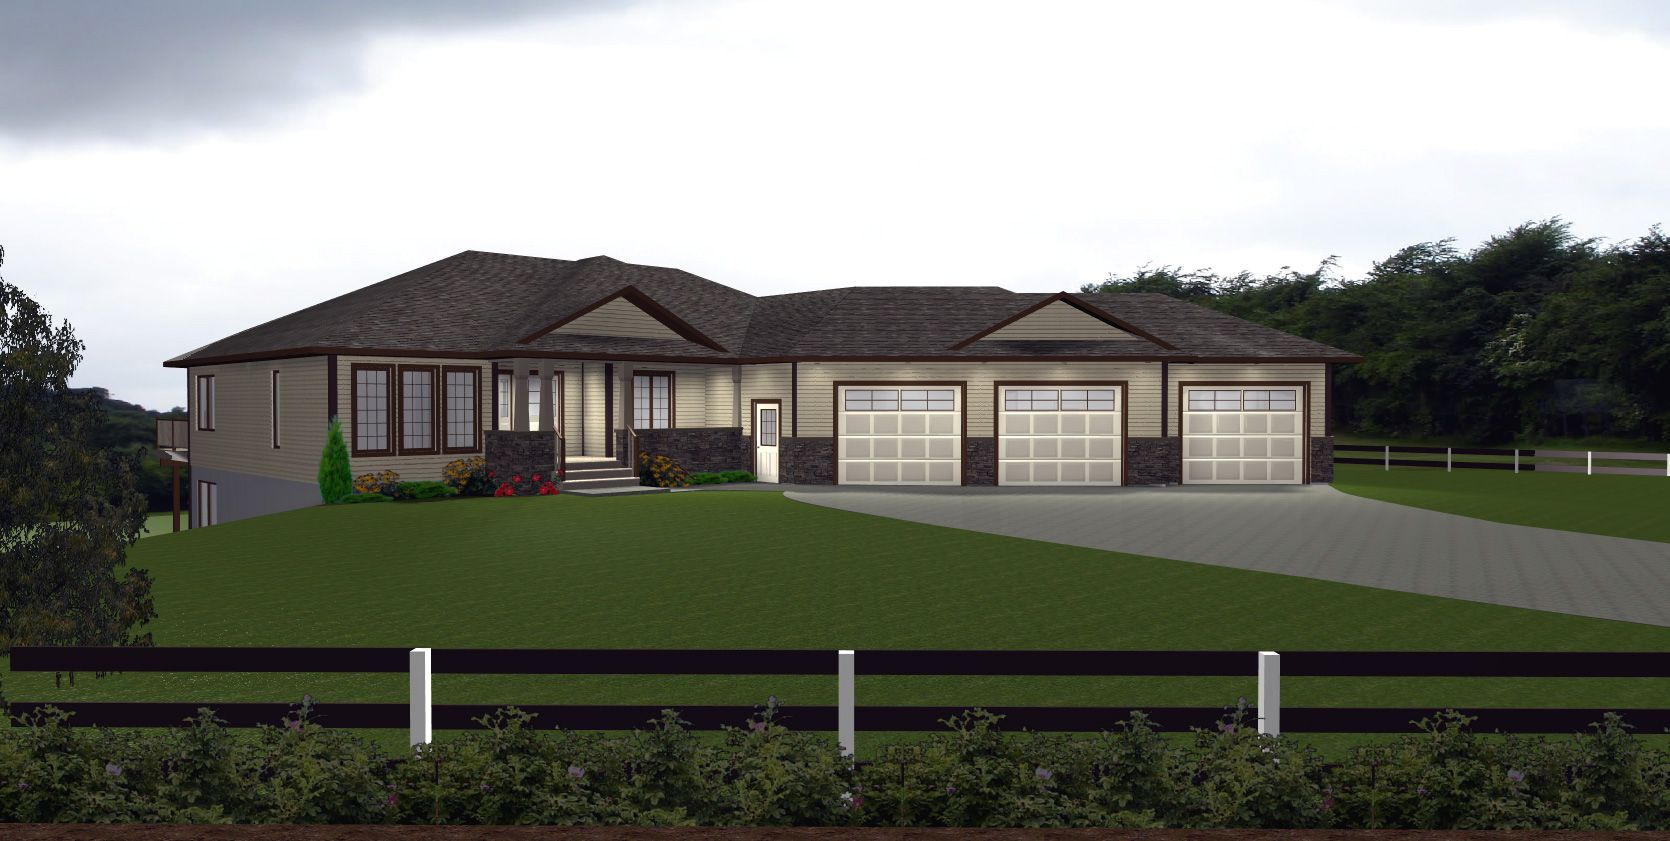 3 Car Garage 1900 Sq Ft House Plans Email Info Edesignsplans Ca